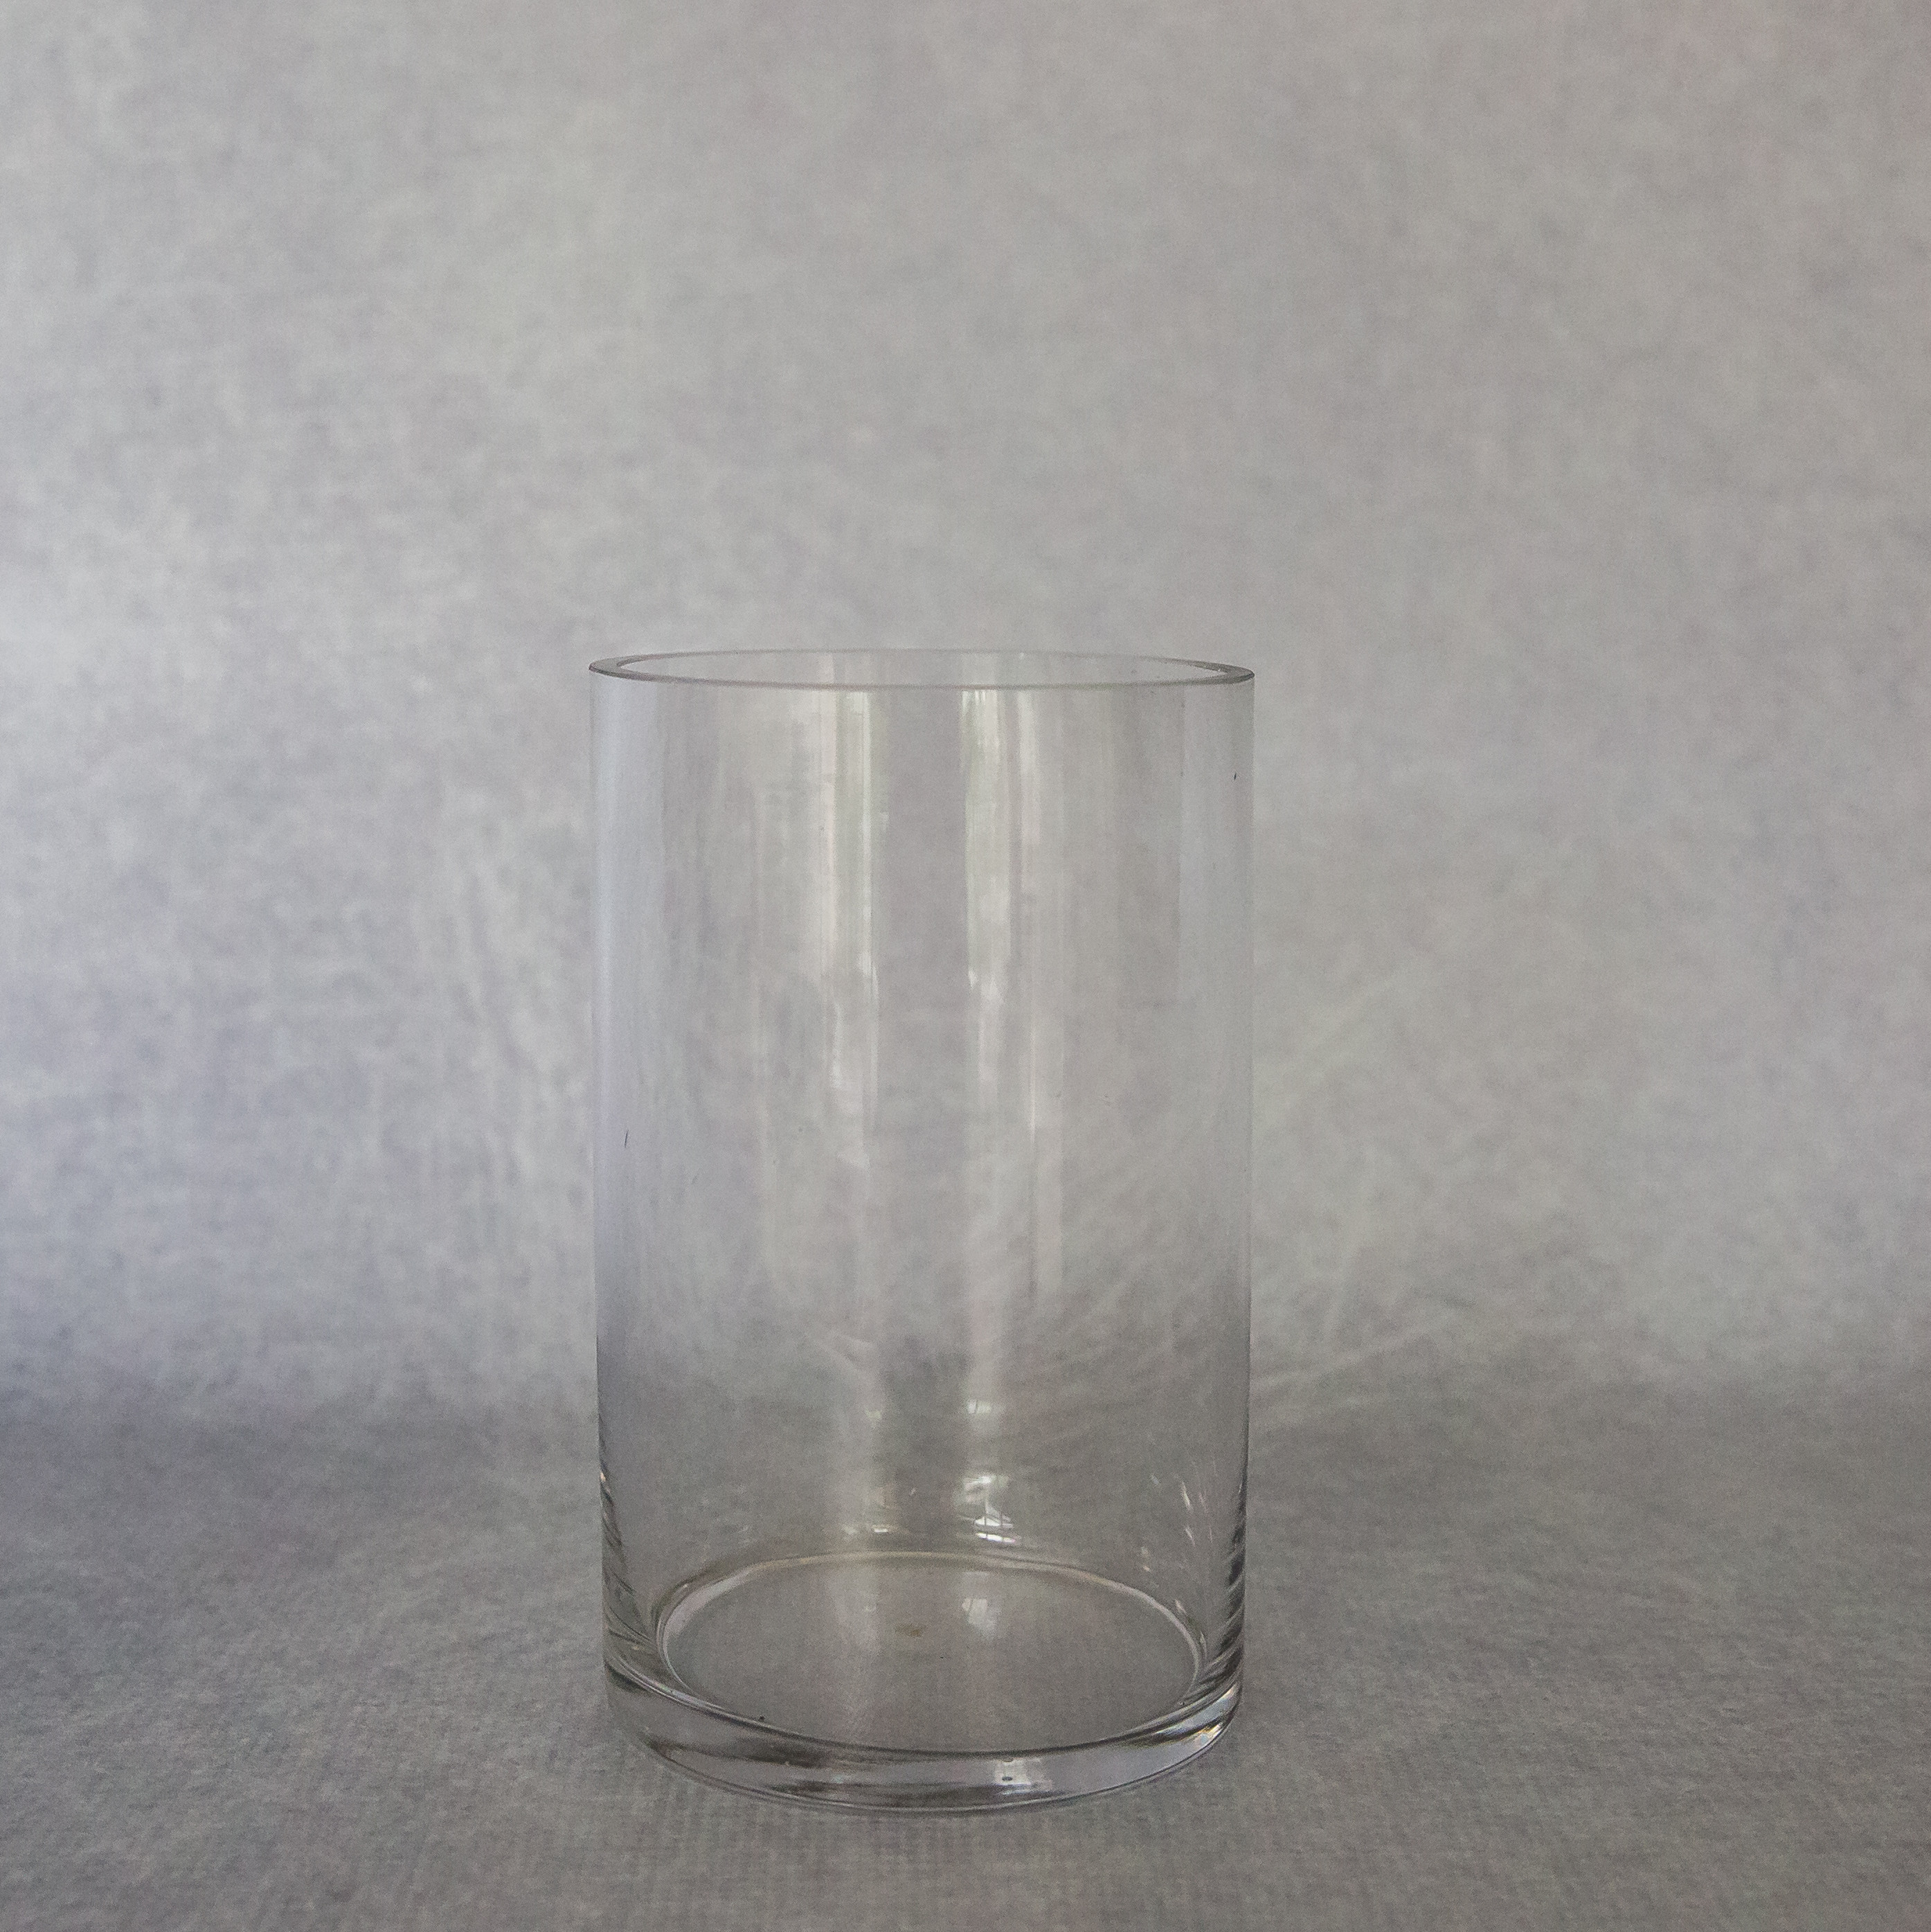 10.5 cylinder vase of glass vases flamboijant decor hire within 17a—10 5cm cylinder glass vase